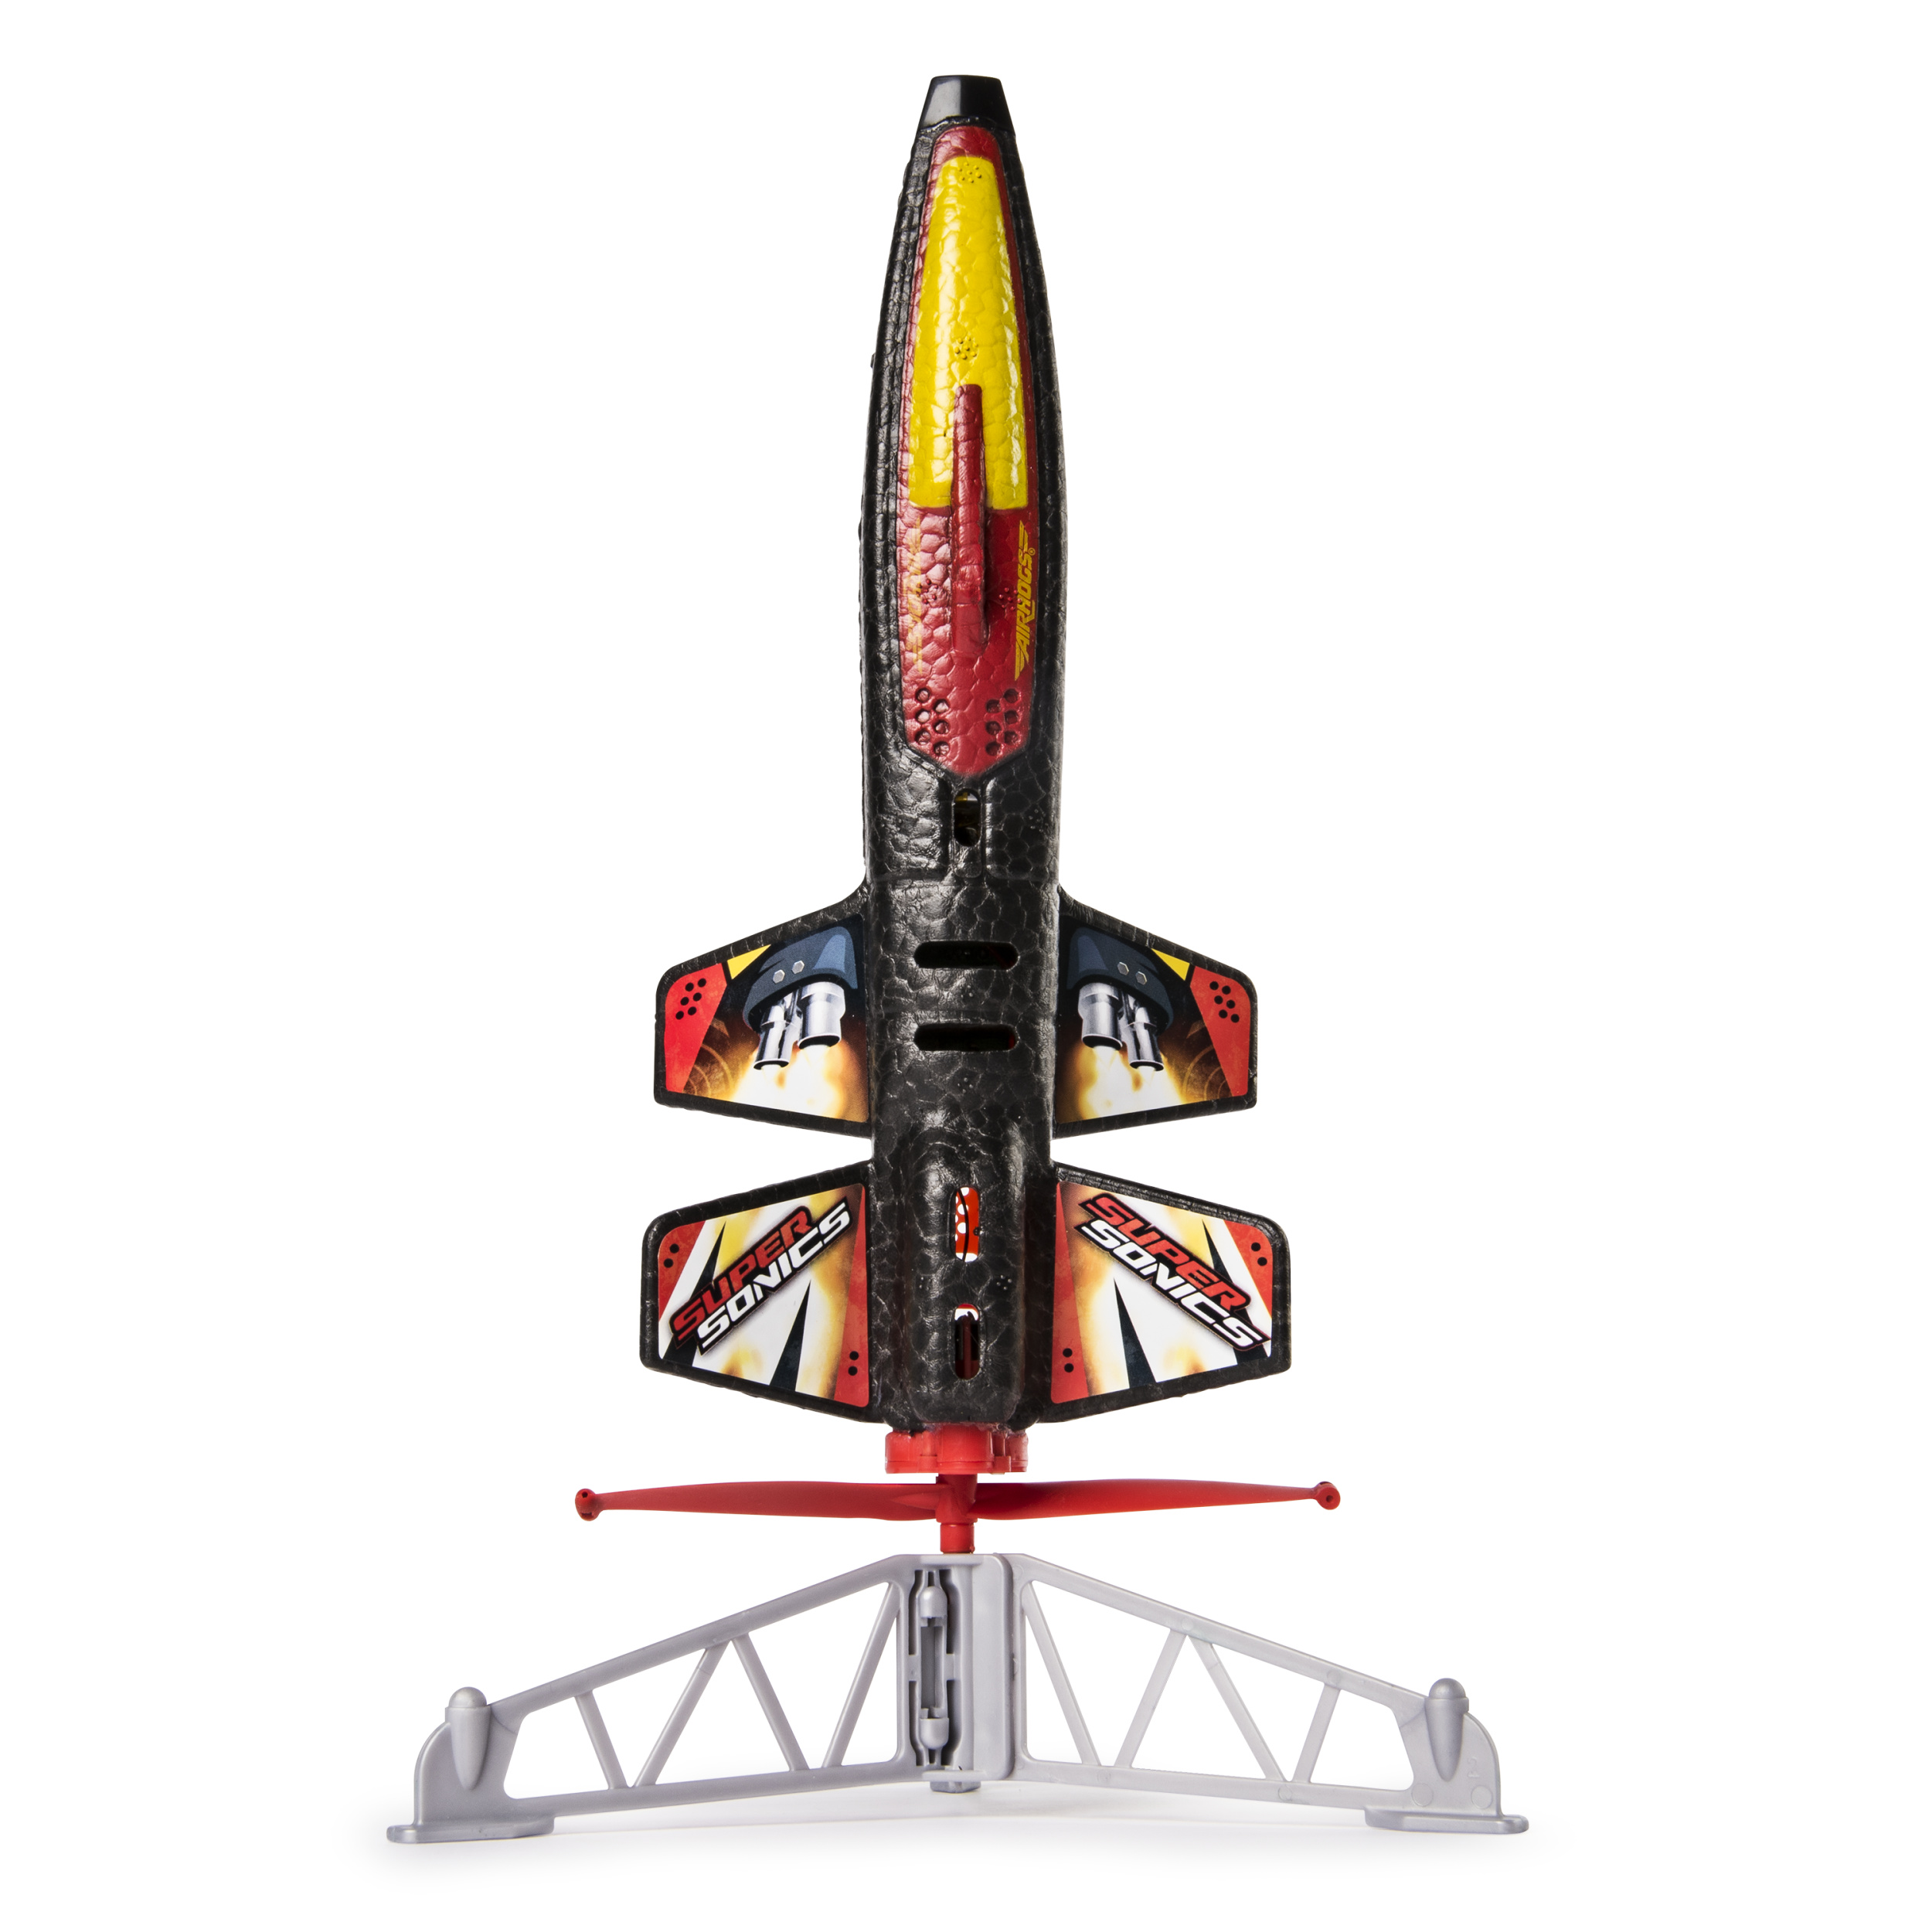 Air Hogs ‐ Sonic Rocket High‐flying Motorized Rocket by Spin Master Ltd